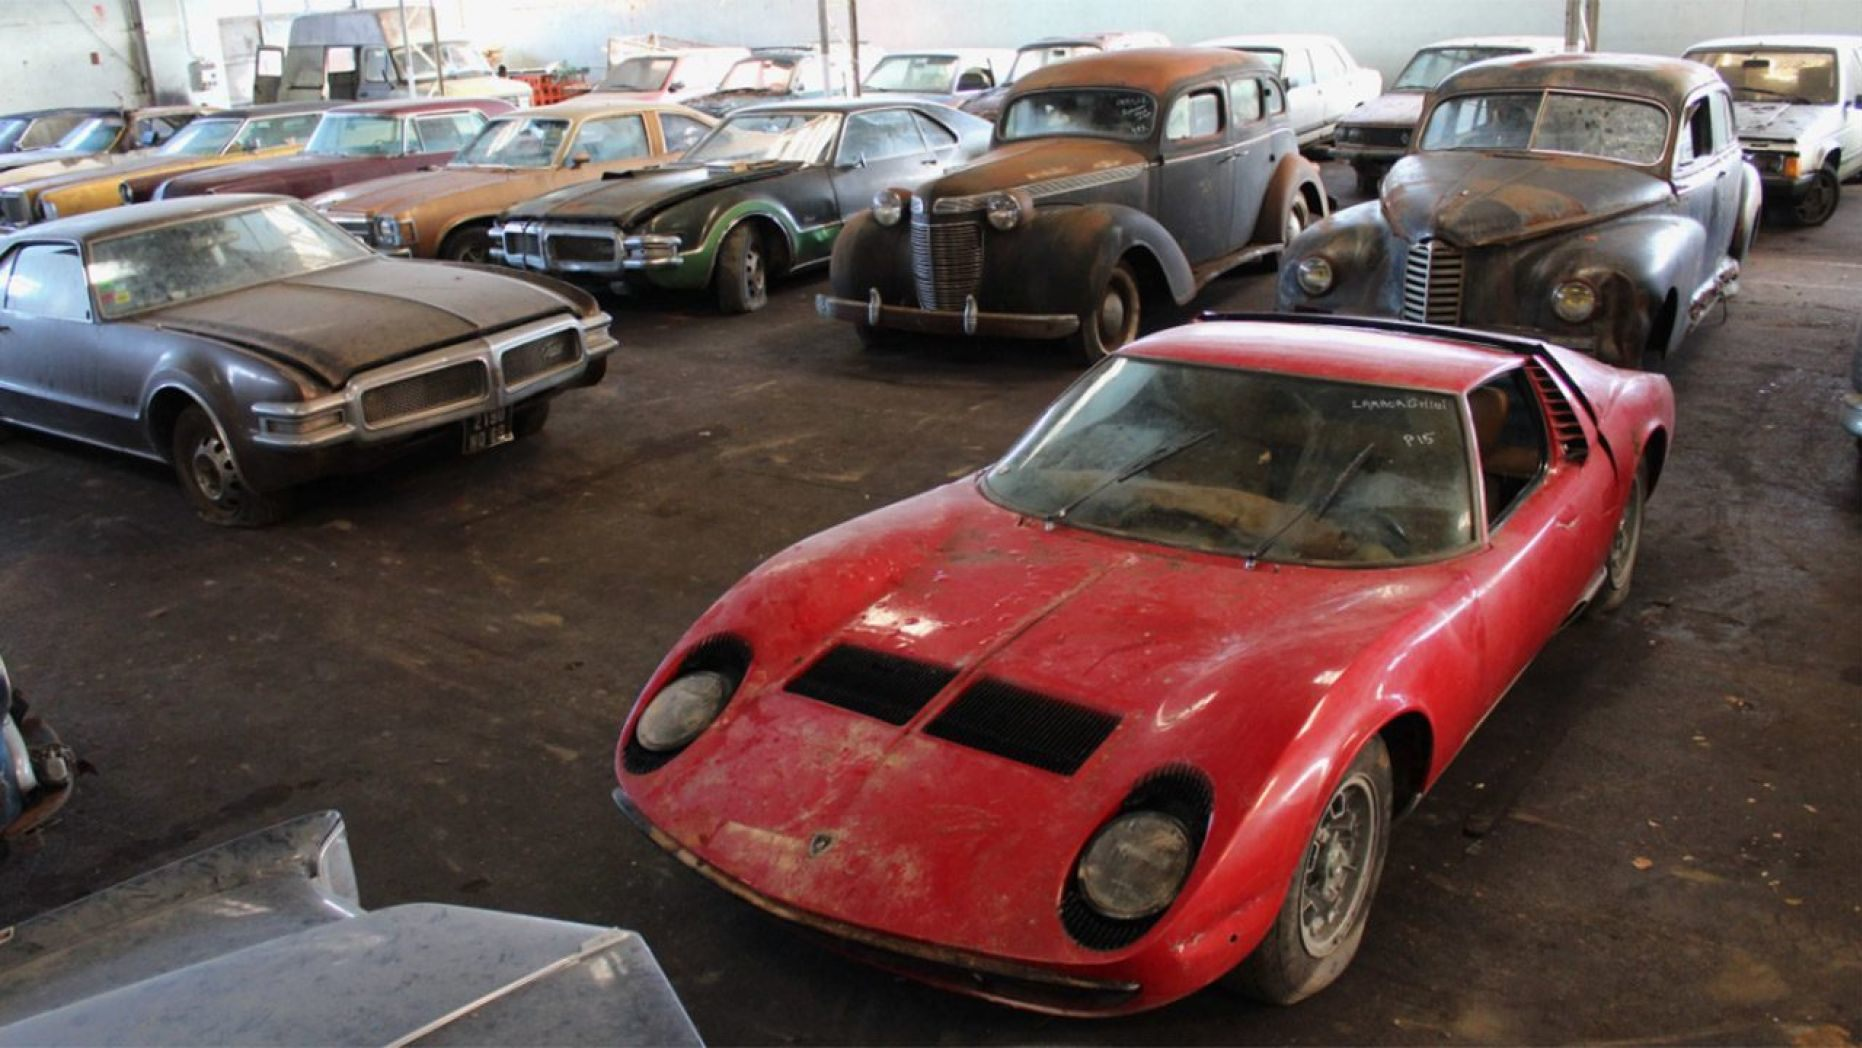 After French collector's death, more than 80 cars were discovered in buildings and outdoors, including a Lamborghini Miura. The big barn find will be offered at auction. | Interencheres photo